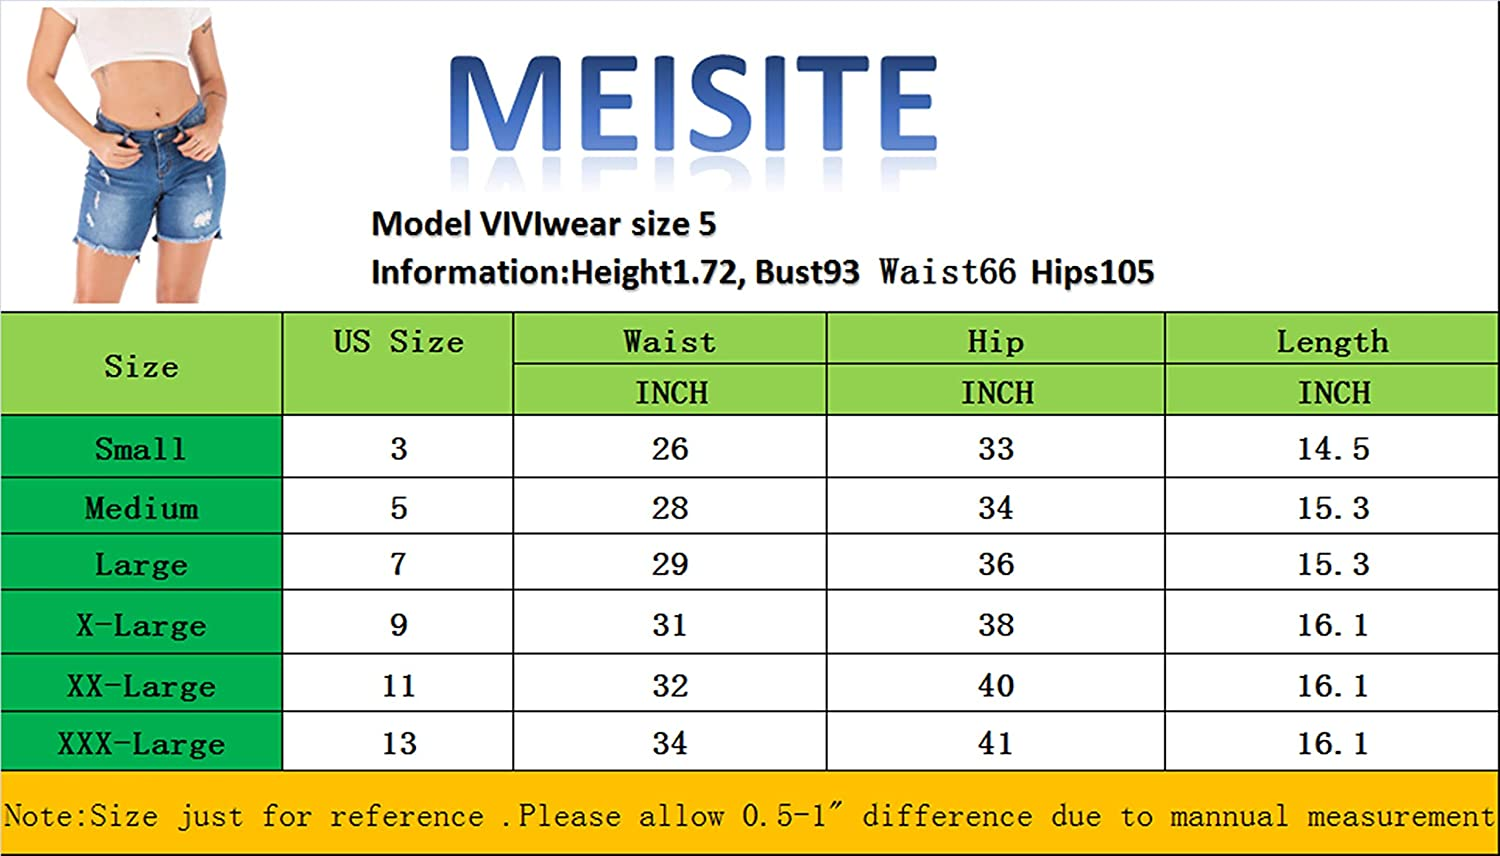 MEISITE Womens Juniors Denim Shorts High Waist Ripped Hole Washed Distressed Short Jeans